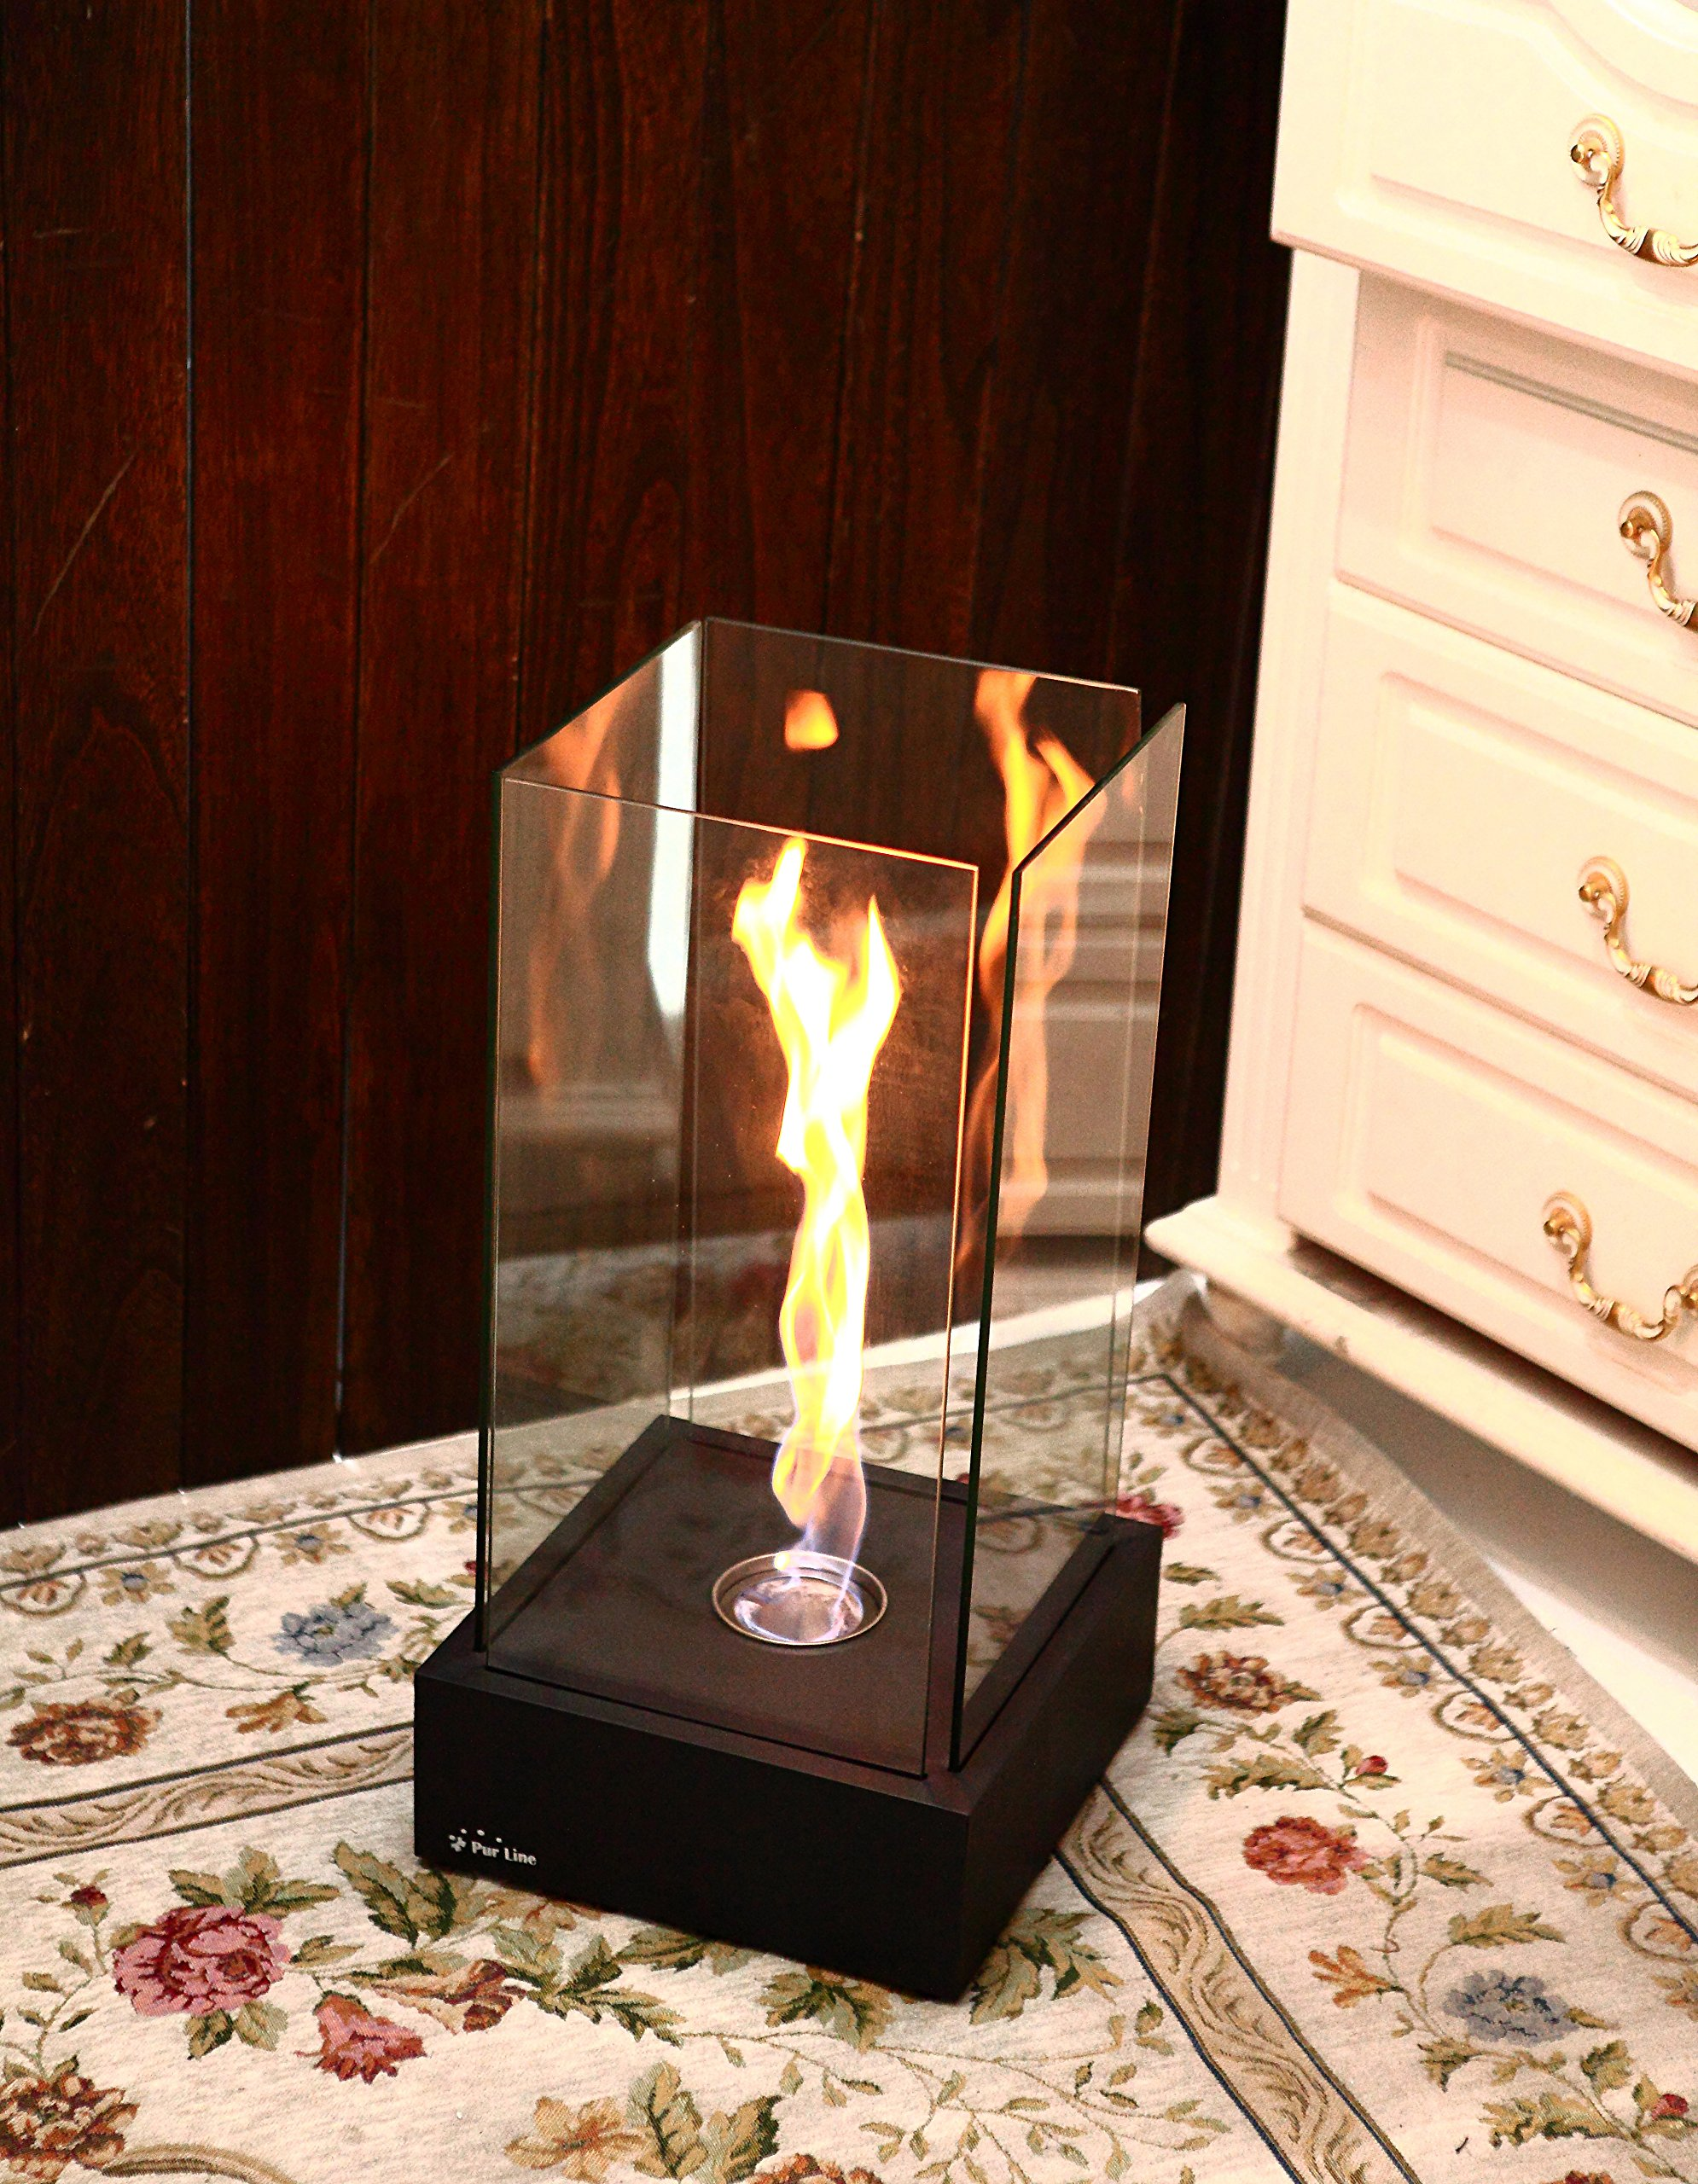 Fire Desire's Tornado Fireplace - Unique Dancing Twisting Flame, Both Indoor and Outdoor Use, Great for Decoration, Cozy Atmosphere, German Design, Can Put Anywhere, Table Top, Easy to Set Up